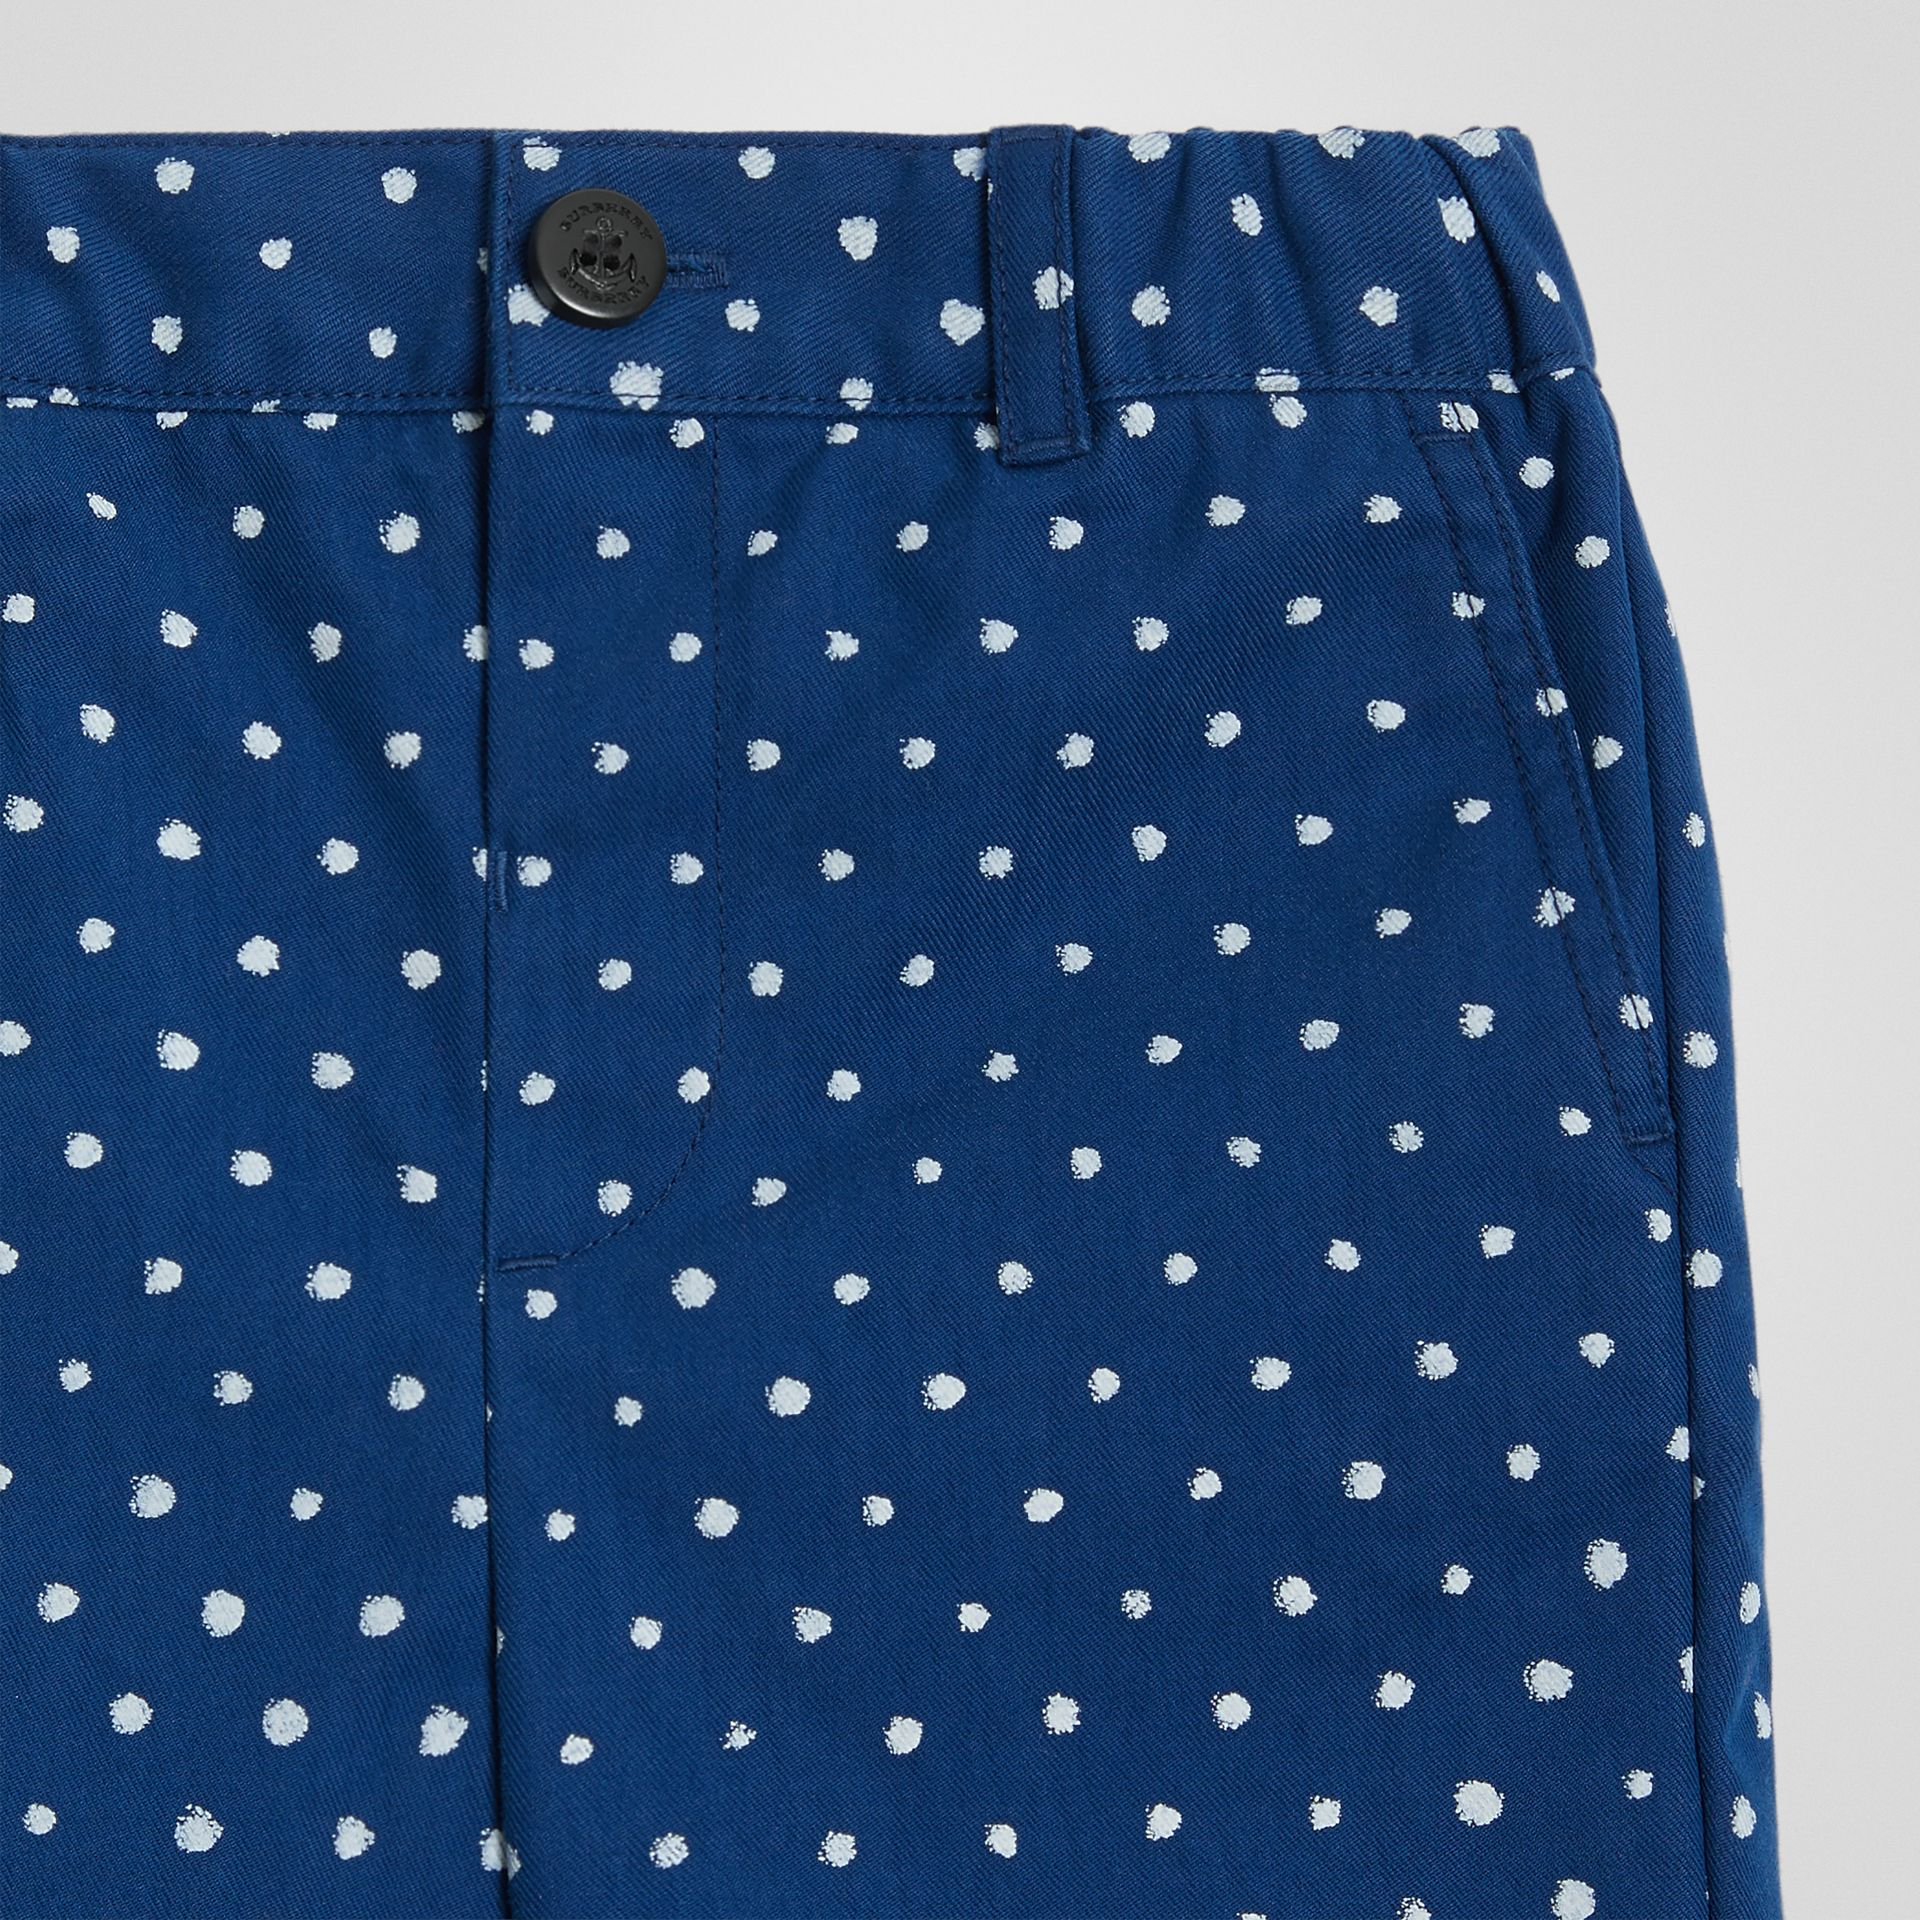 Spot Print Cotton Blend Shorts in Bright Navy - Children | Burberry - gallery image 4